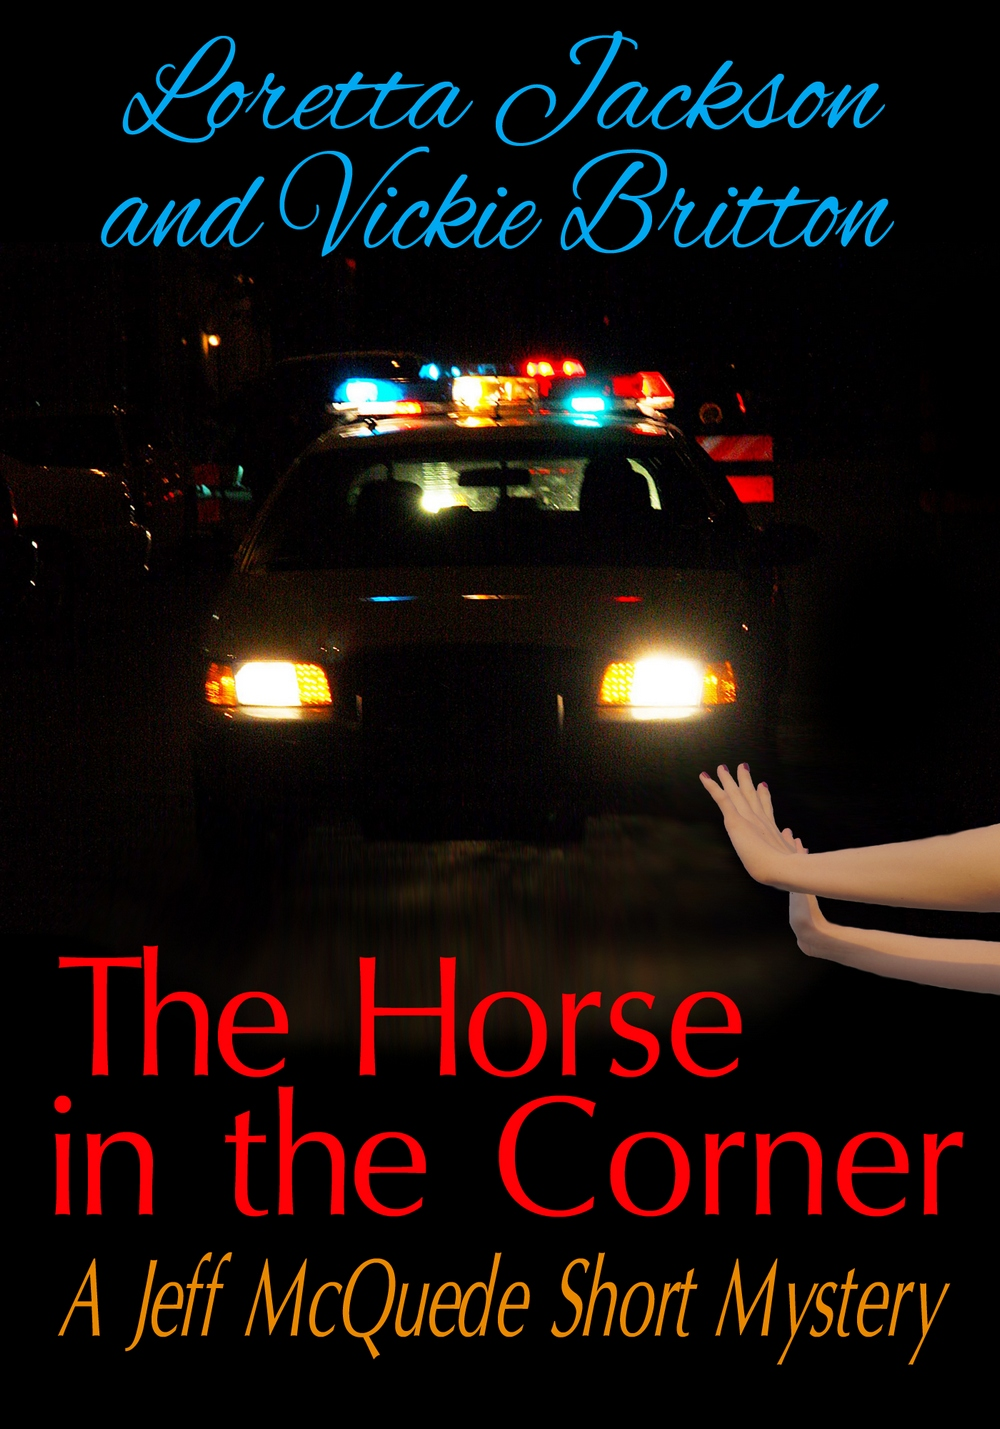 A JEFF MCQUEDE SHORT STORY: THE HORSE IN THE CORNER